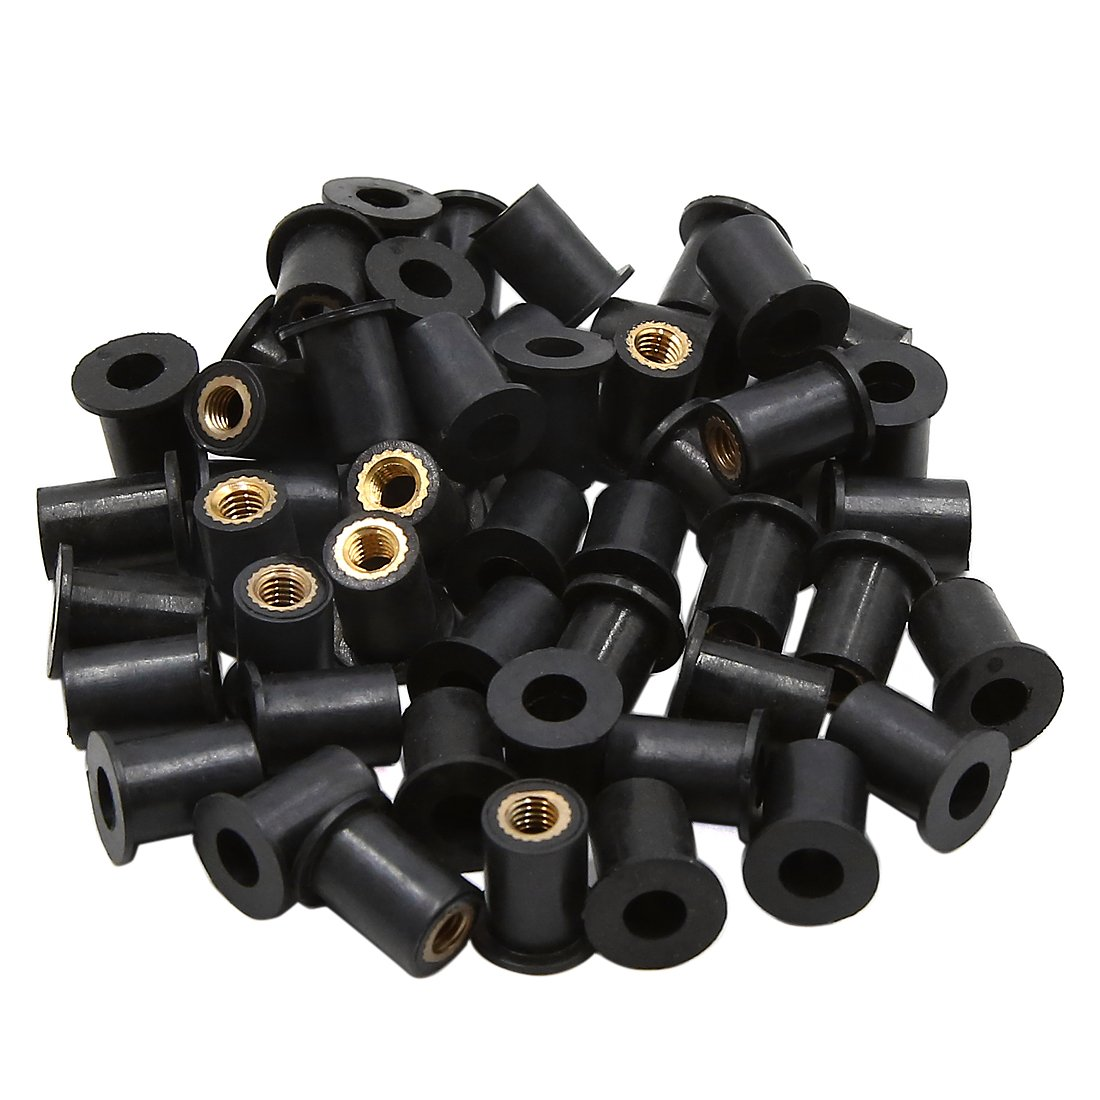 Sourcingmap 50pcs M5 Black Rubber Windscreen Windshield Screws Bolts Nut for Motorcycle a18051700ux0006